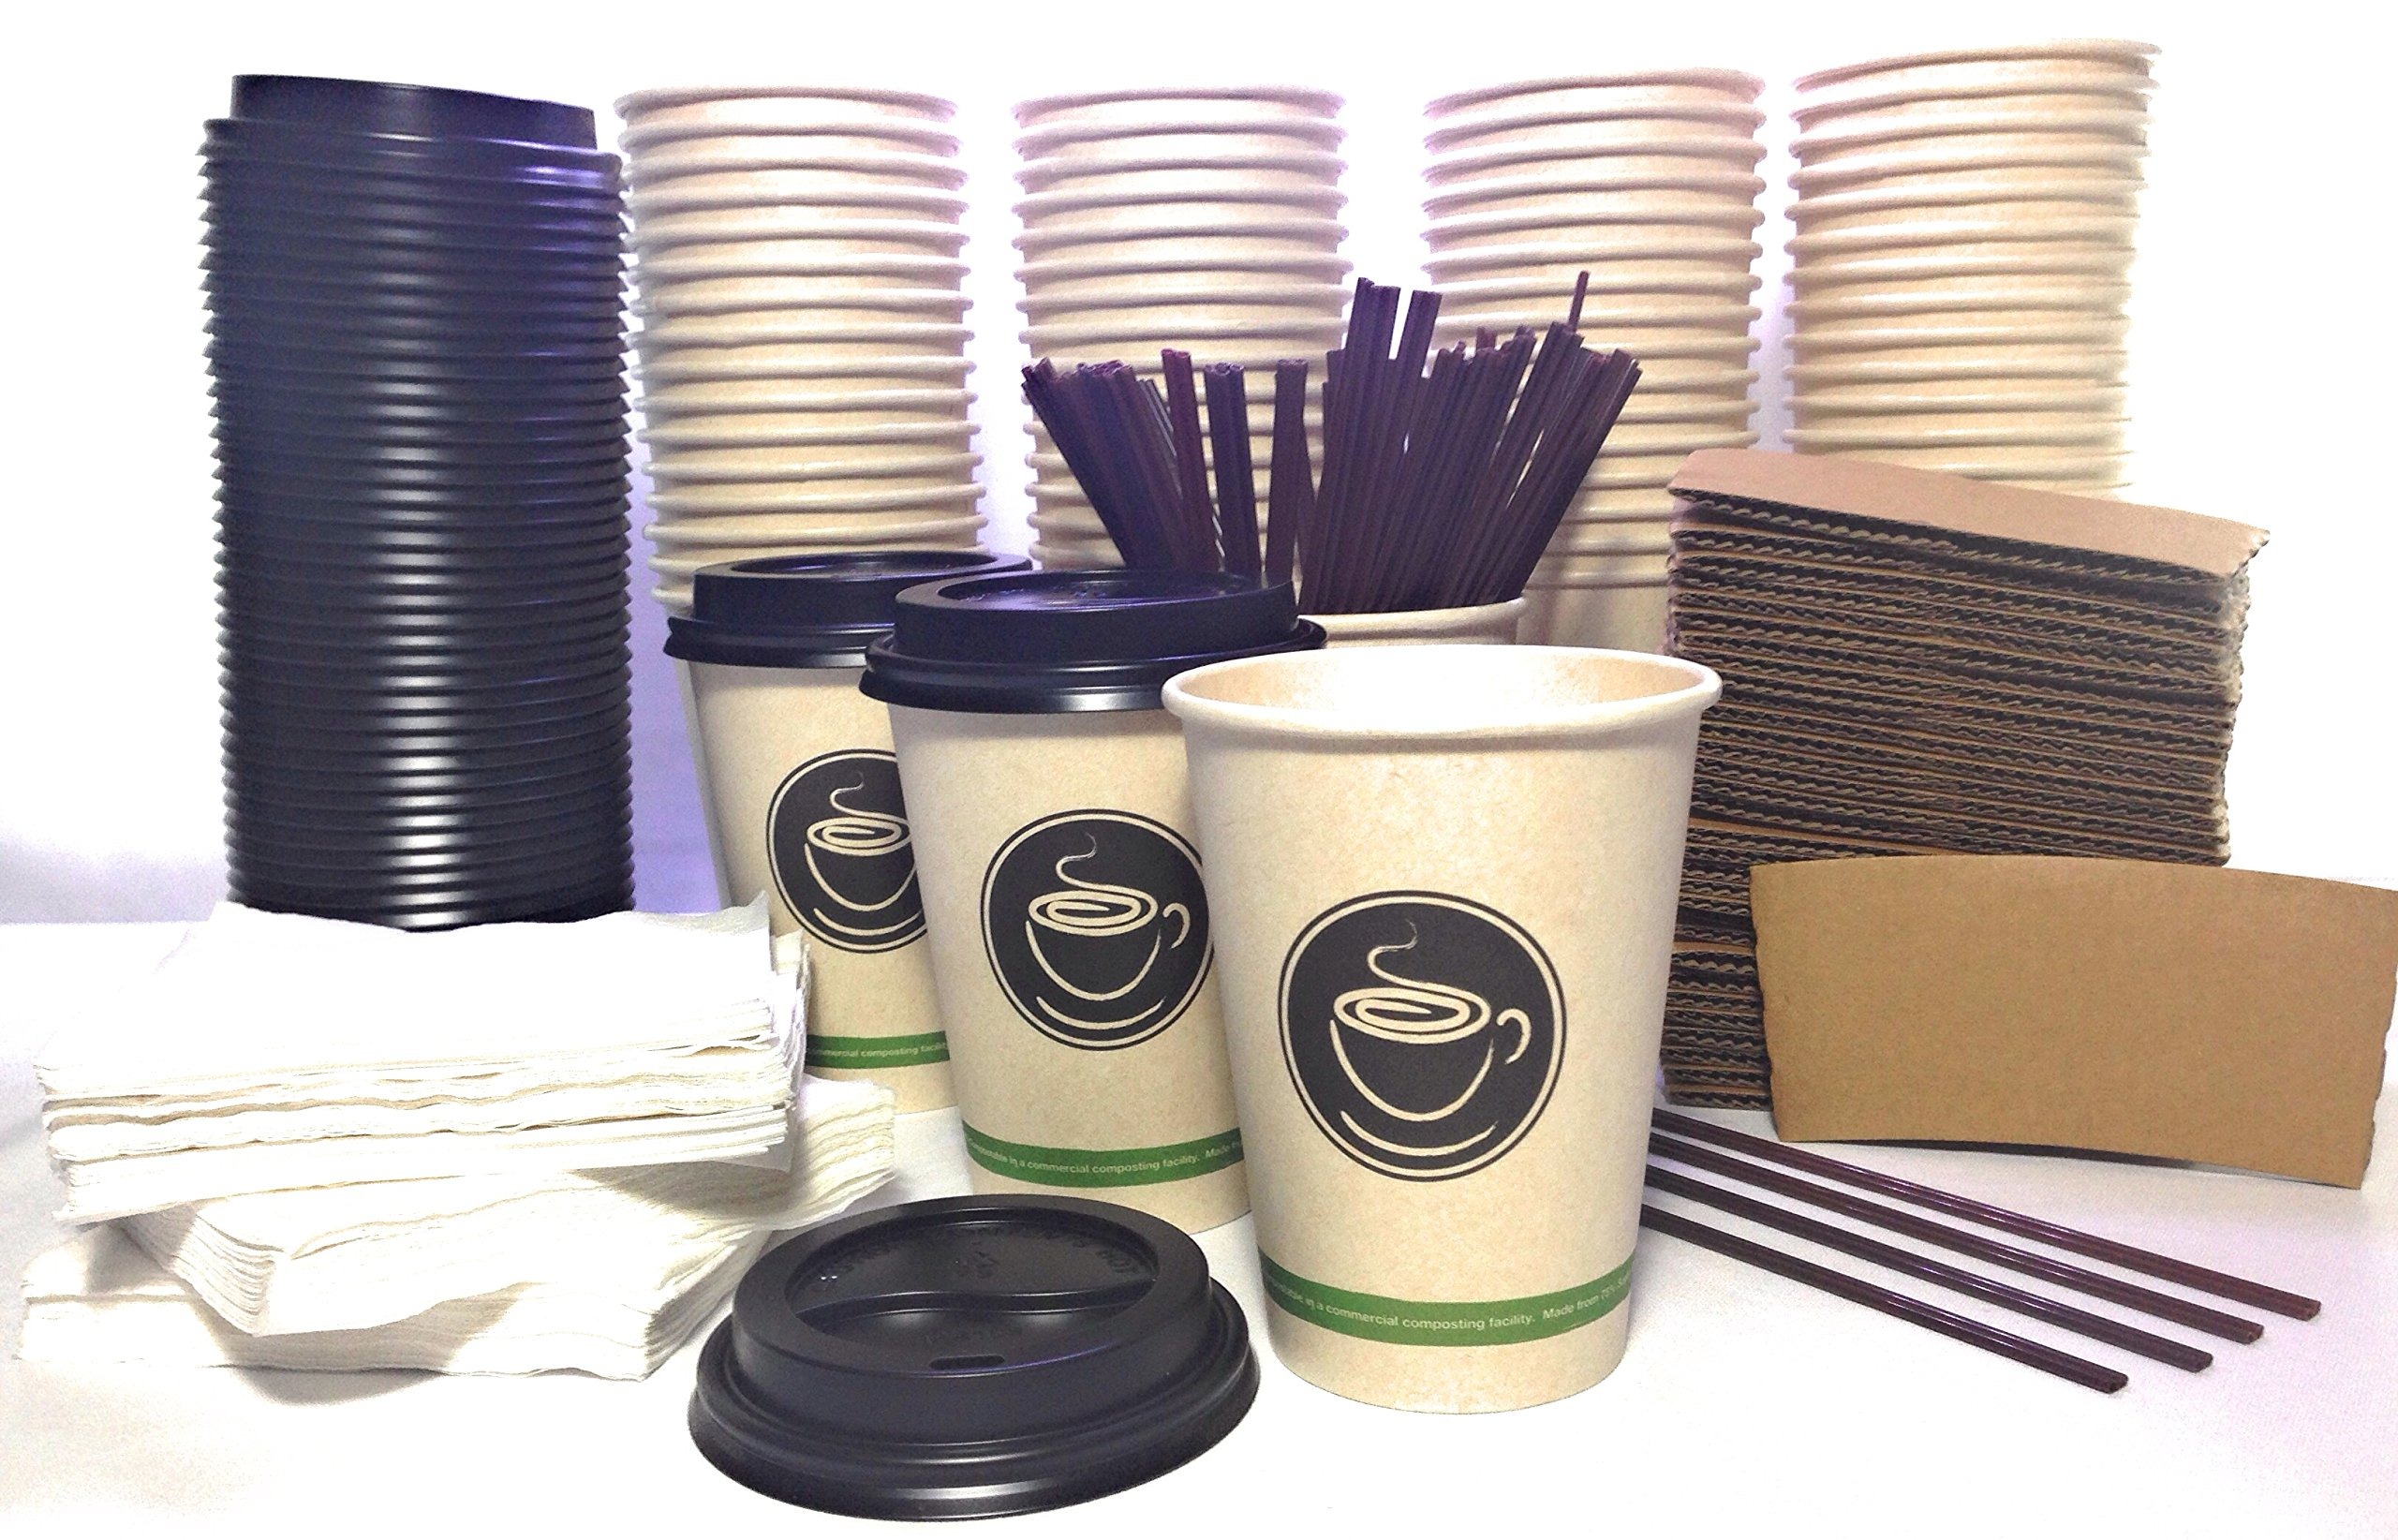 ECO-FRIENDLY Disposable Coffee cups with Lids, Sleeves, Straws, Napkins. 100 set of Fancy 12 oz COMPOSTABLE cups made of Sugar cane paper. For Hot Tea Latte Cappuccino Home Office Party To-go Travel k